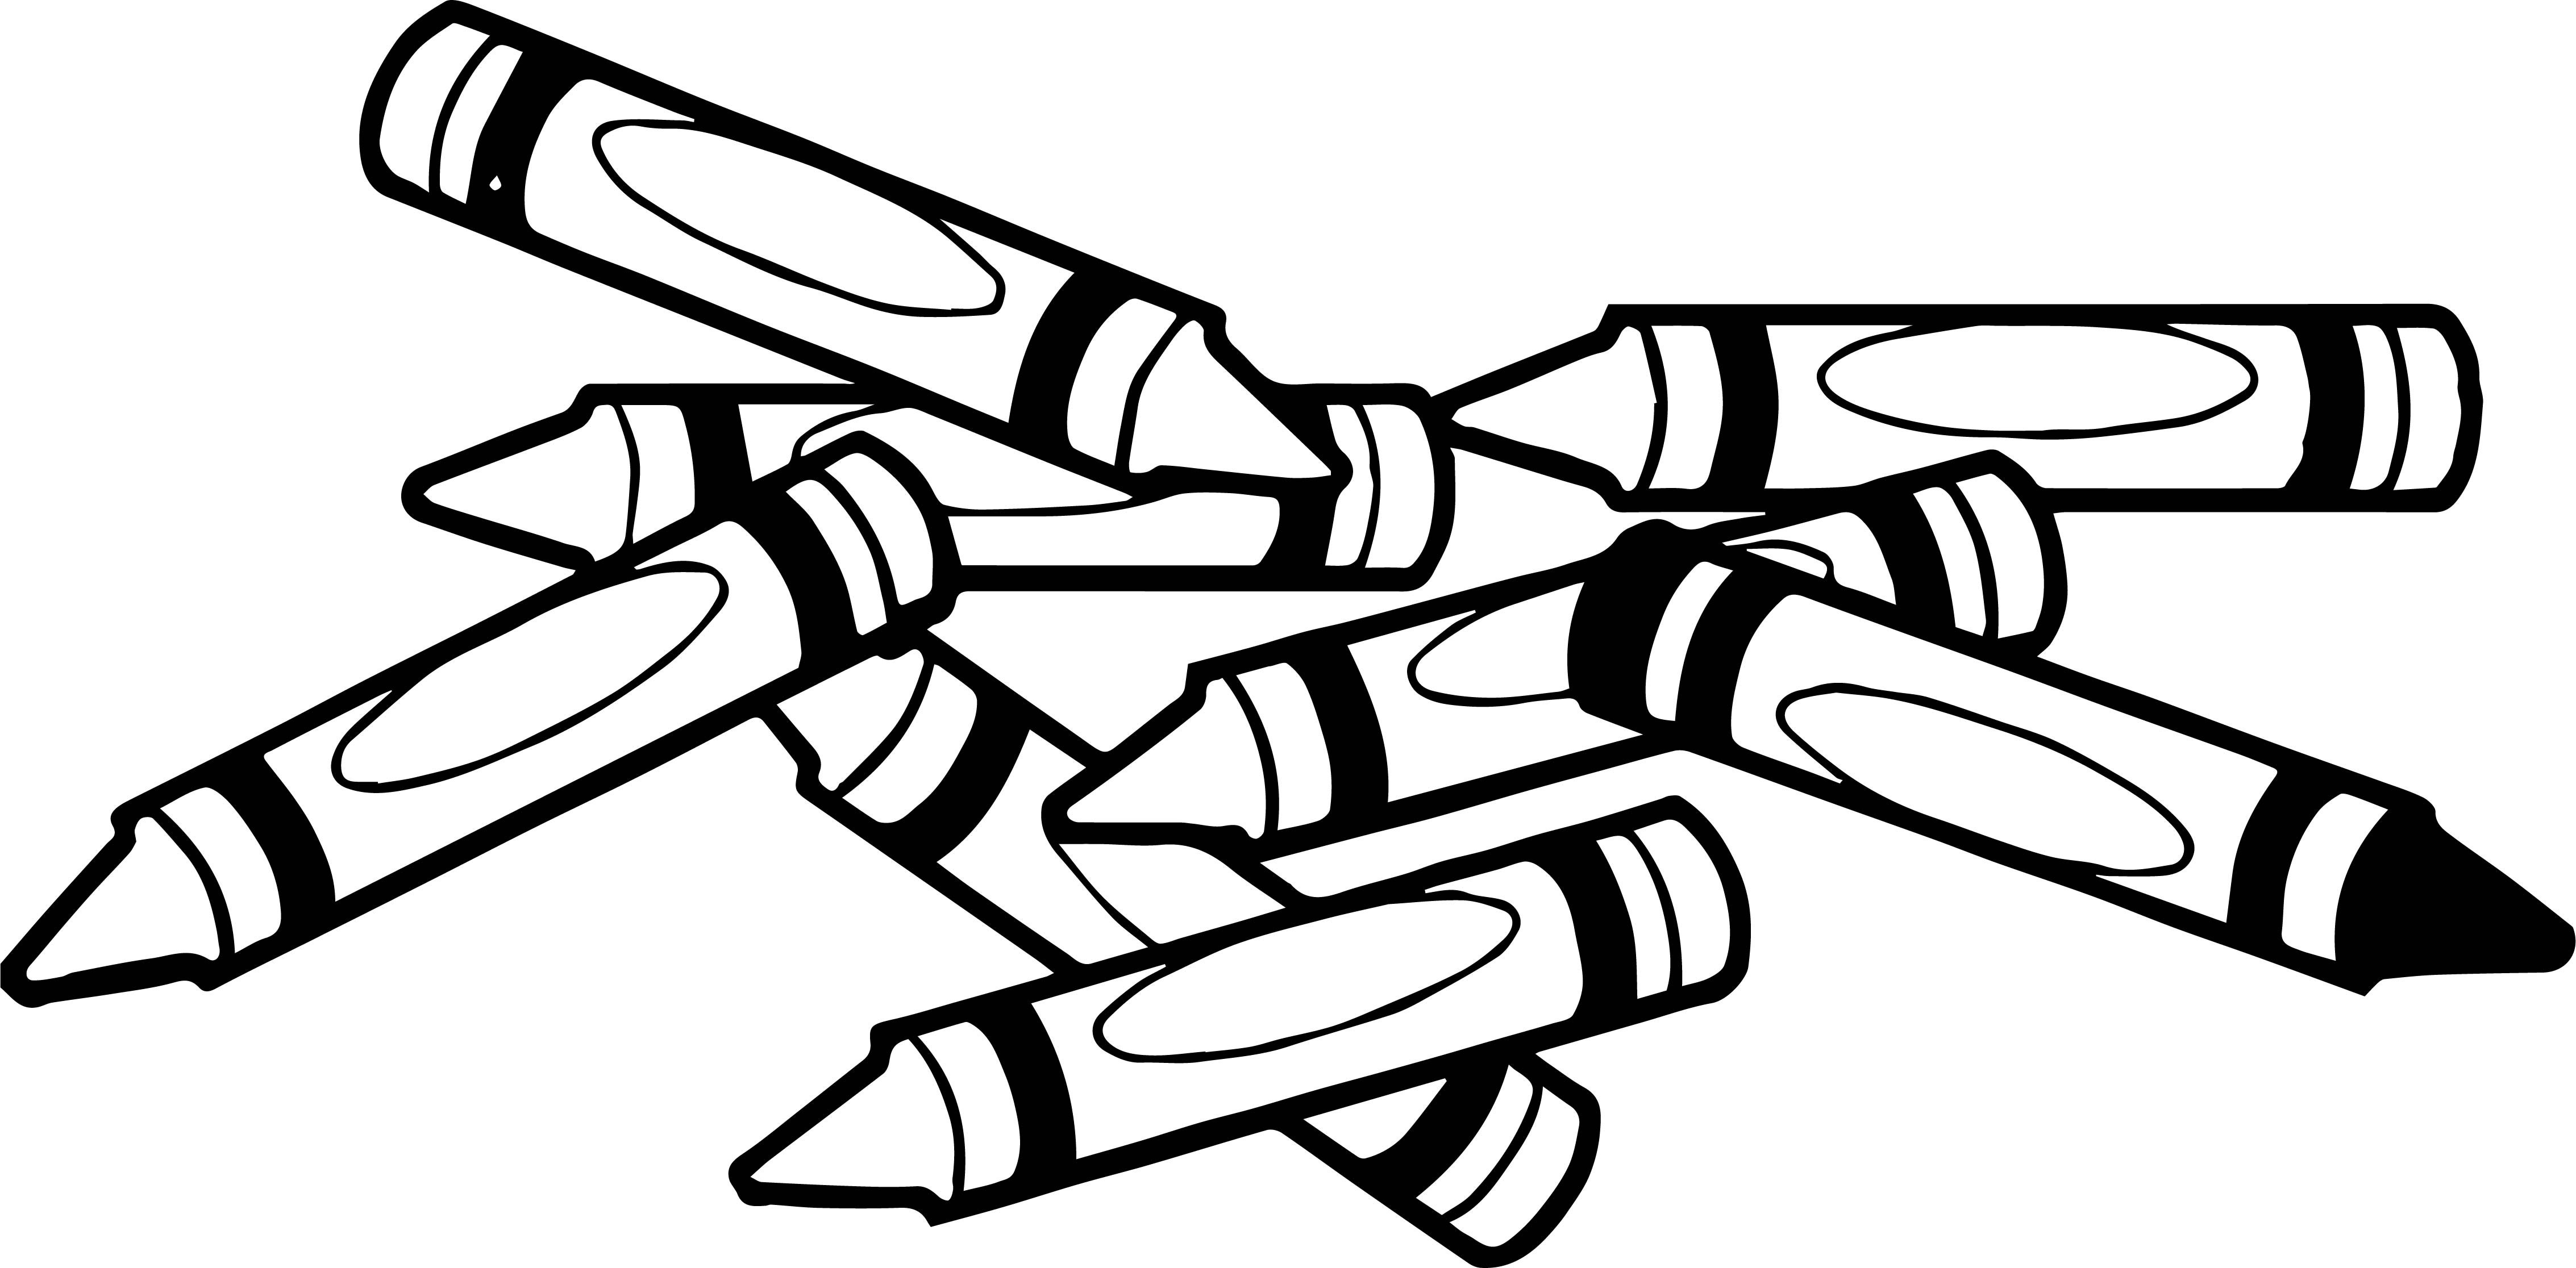 Painting Crayon Pen Coloring Page